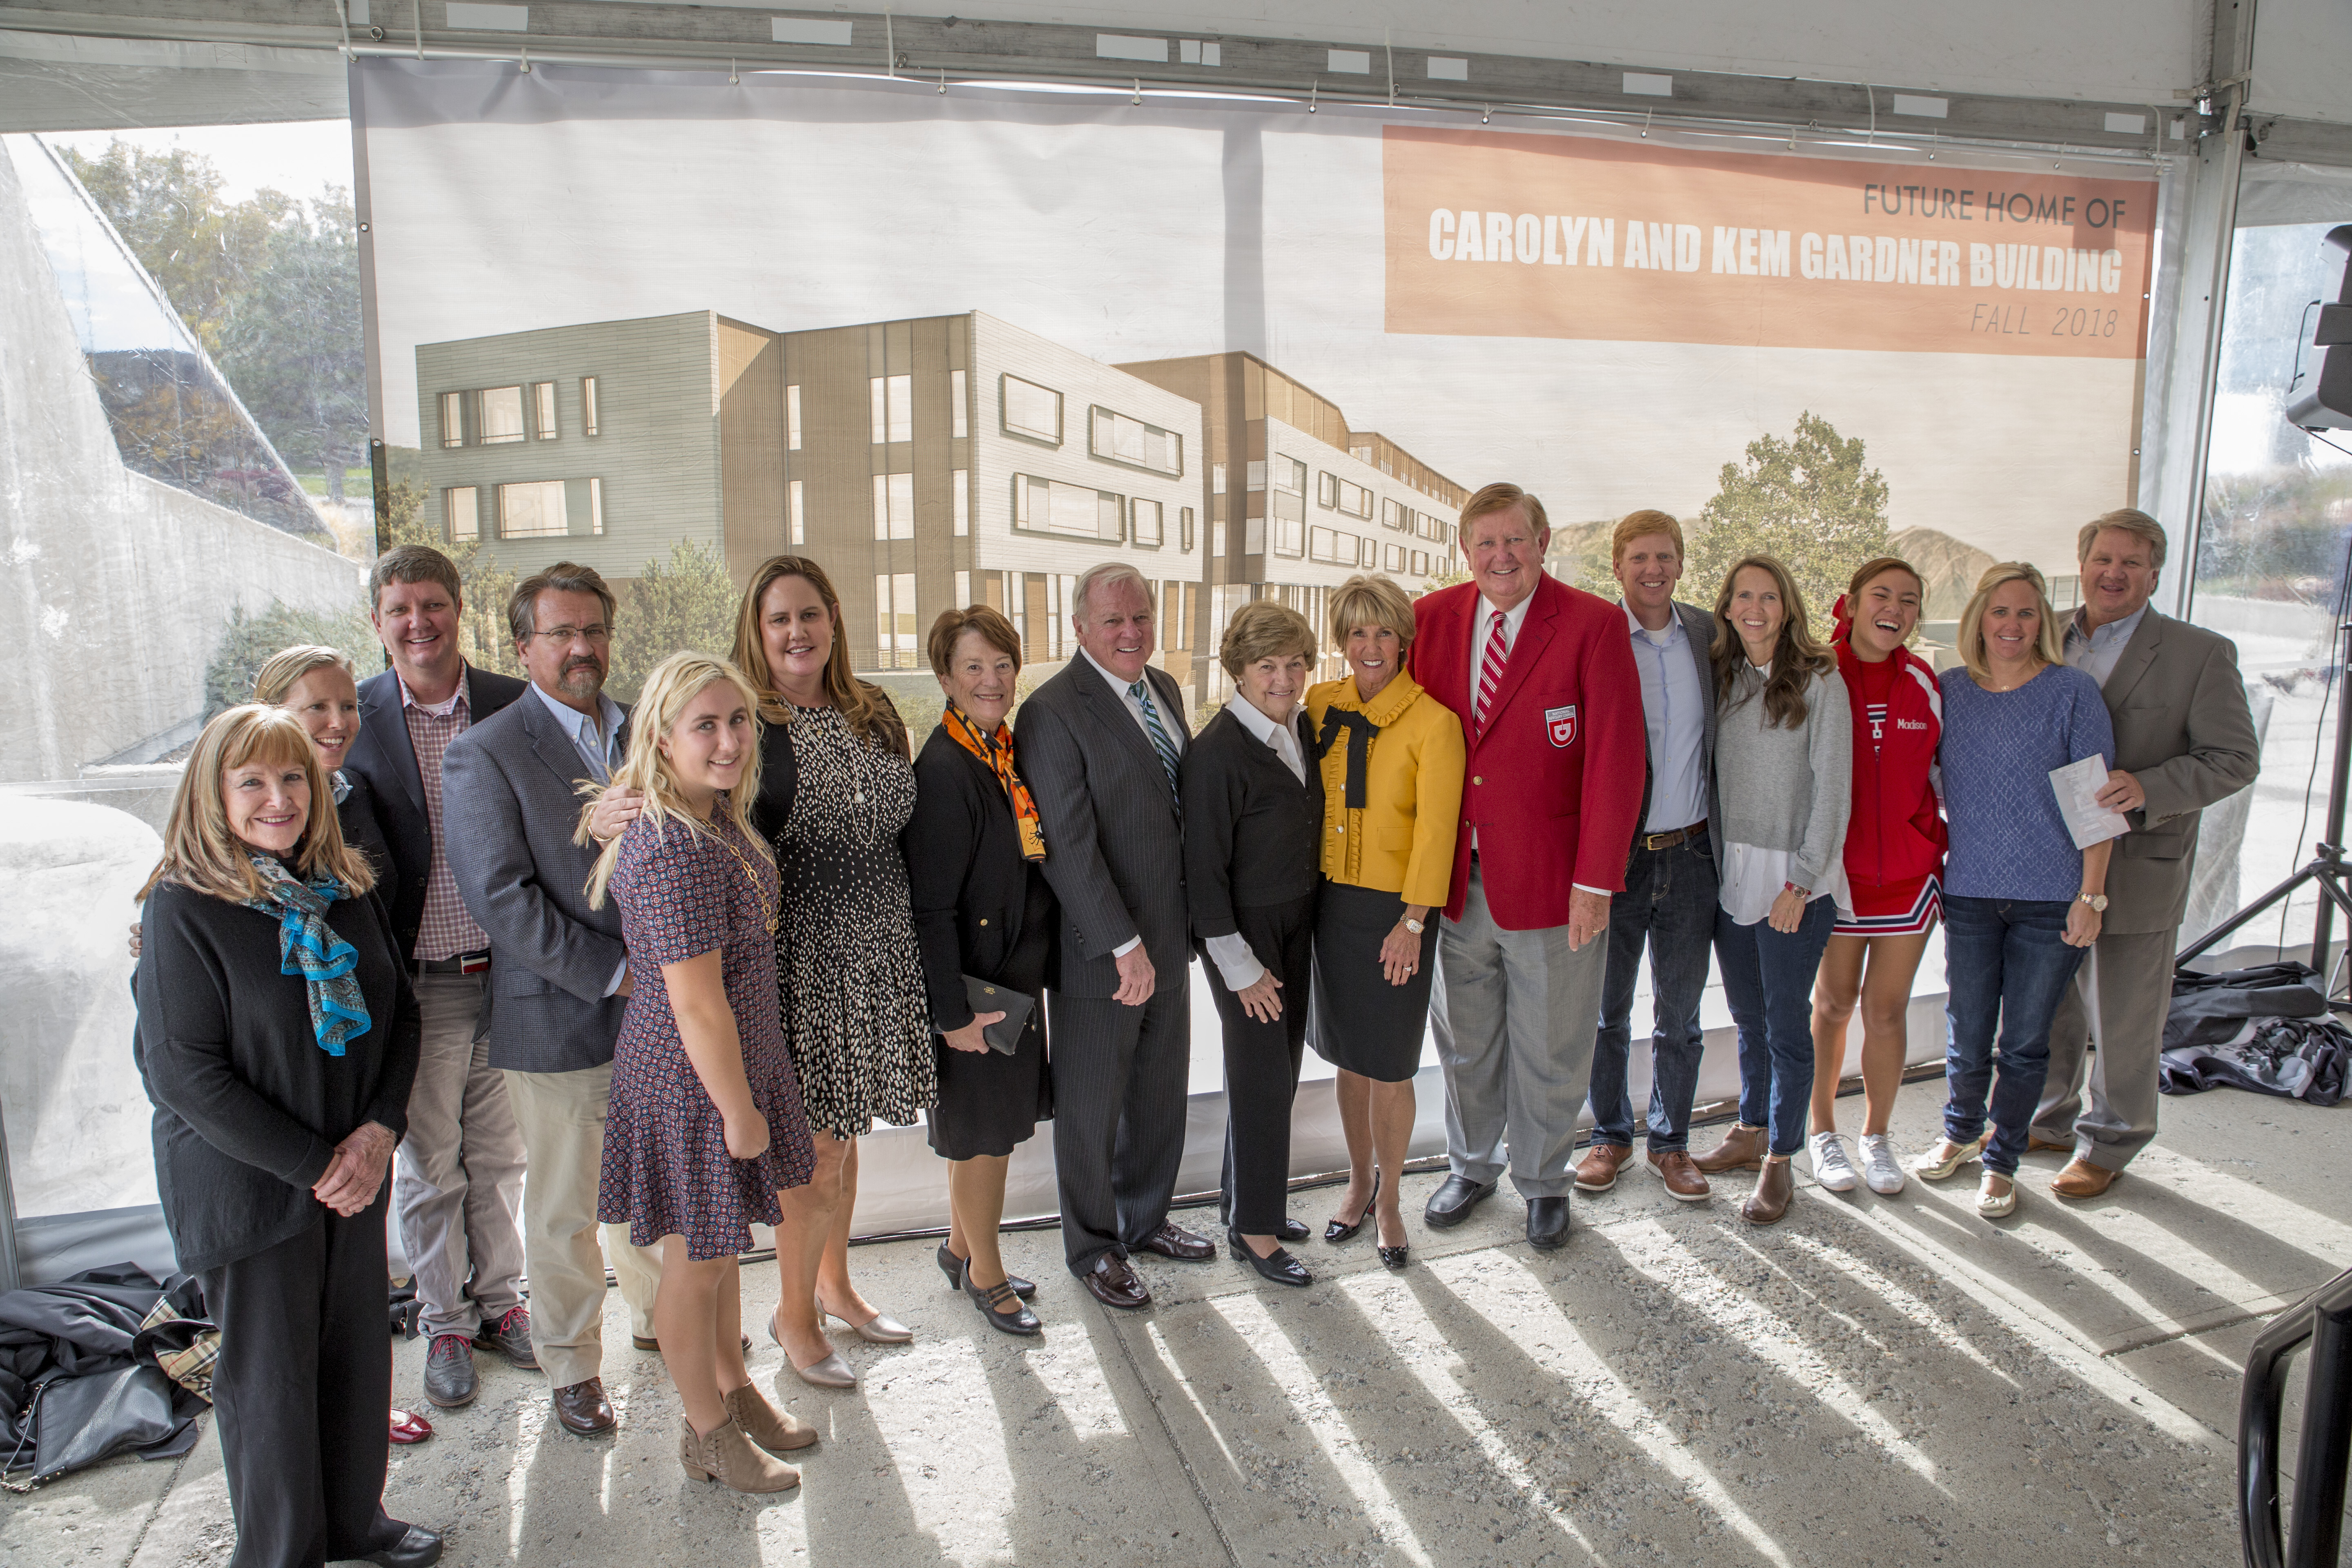 Carolyn and Kem Gardner are joined by their extended family at the unveiling ceremony for the new building.